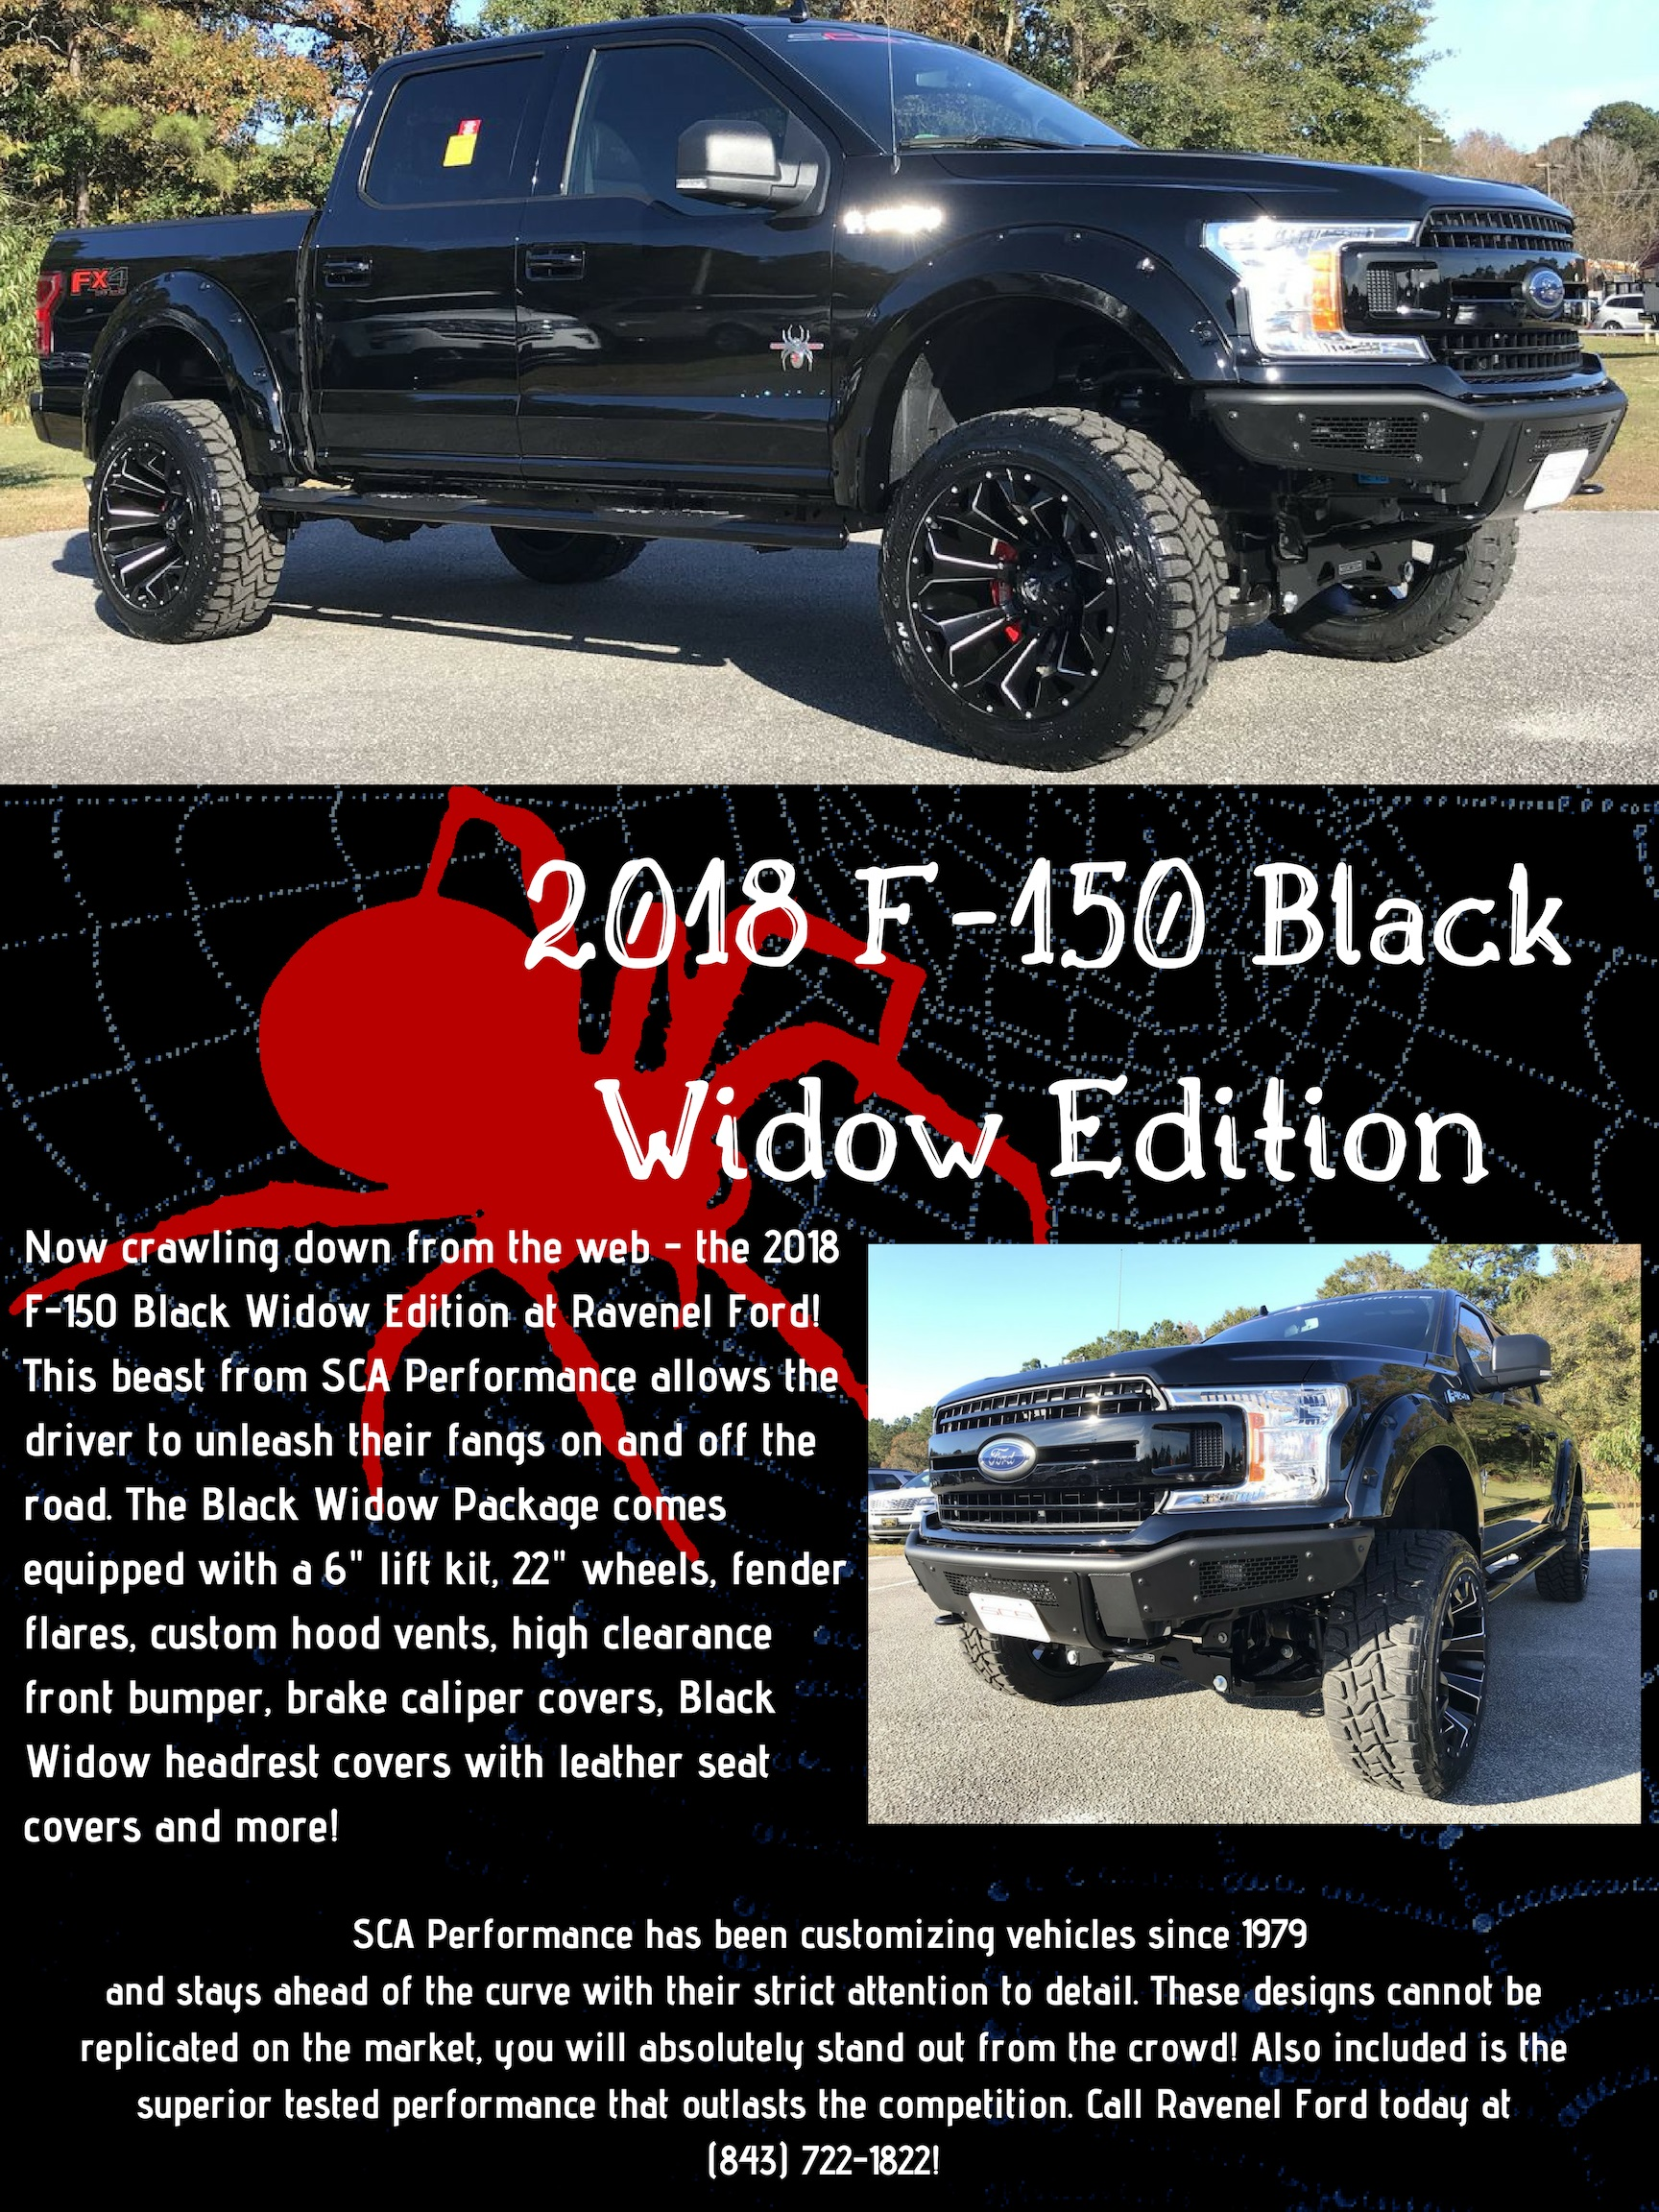 Center Bold F 150 Black Widow Edition At Ravenel Ford Bold